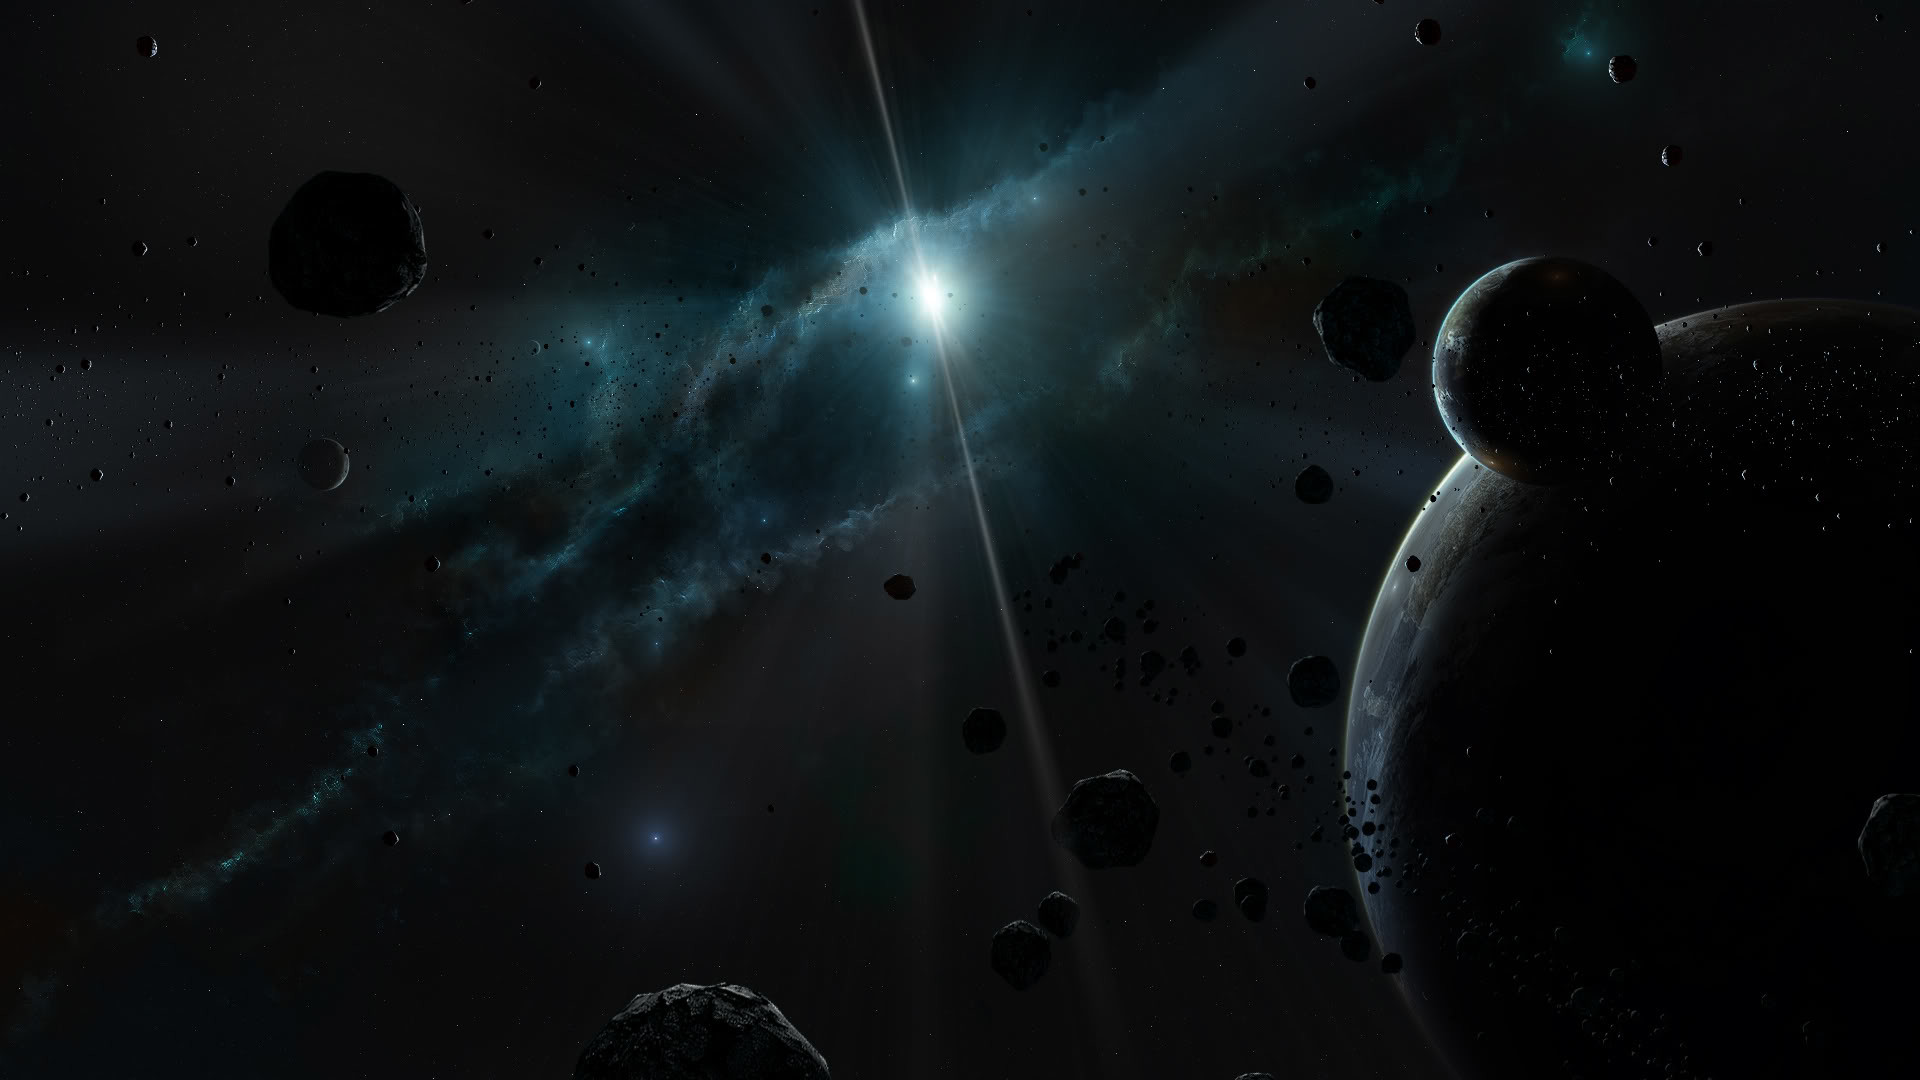 Space Themed Wallpapers